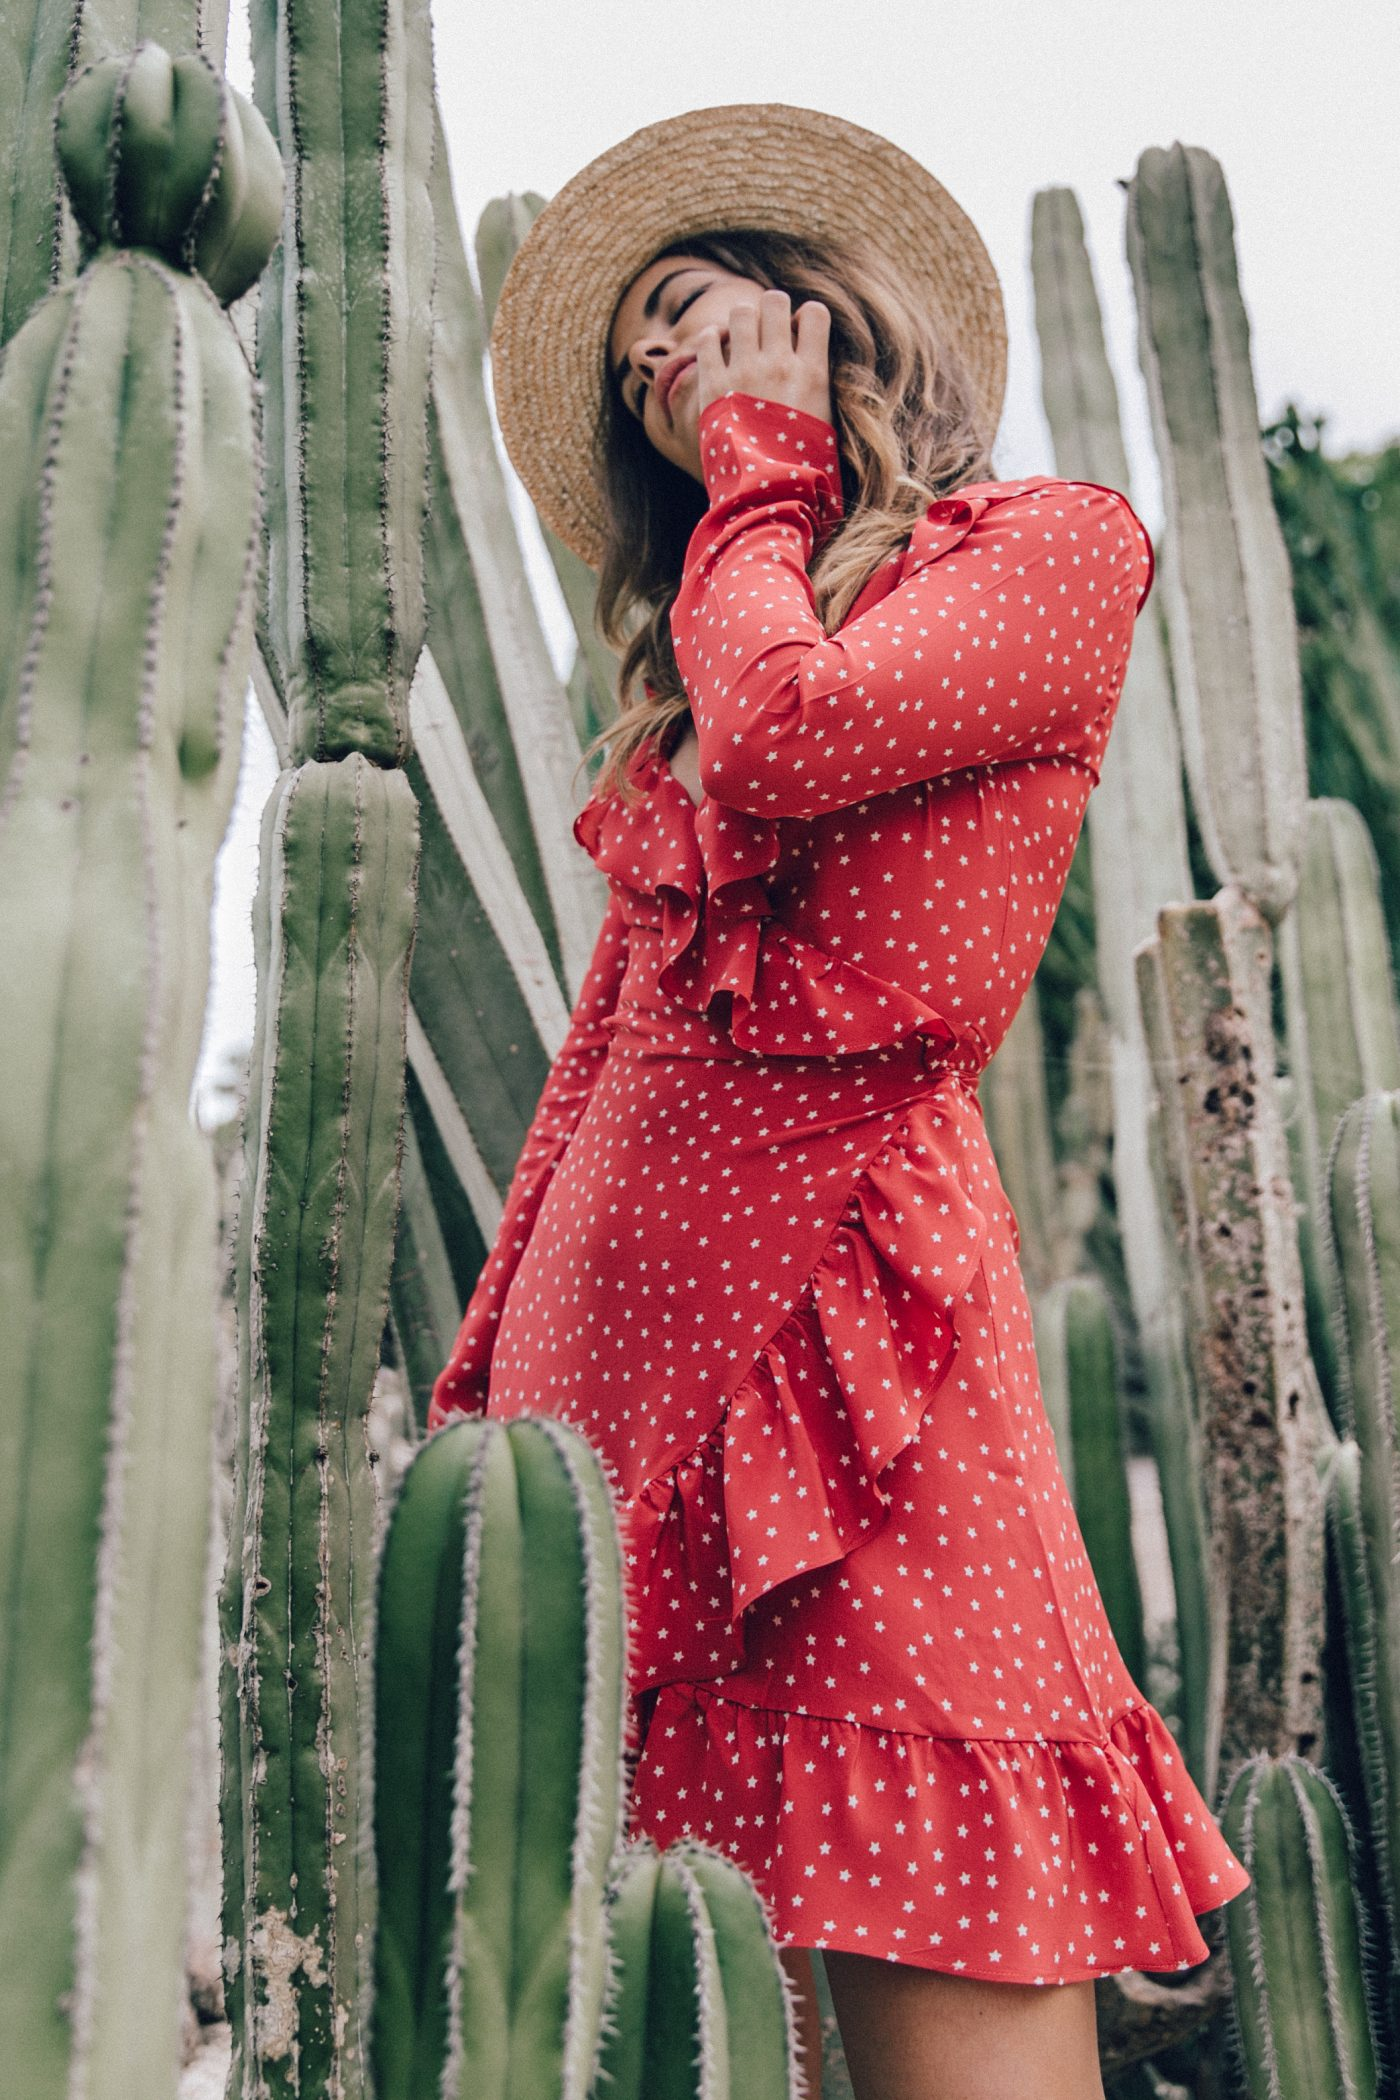 Realisation_Par_Dress-Star_Print-Red_Dress-Outfit-Catonier-Hat-Lack_Of_Color-Black_Sandals_Topshop-Barcelona-Collage_Vintage-Mossen_Gardens-38